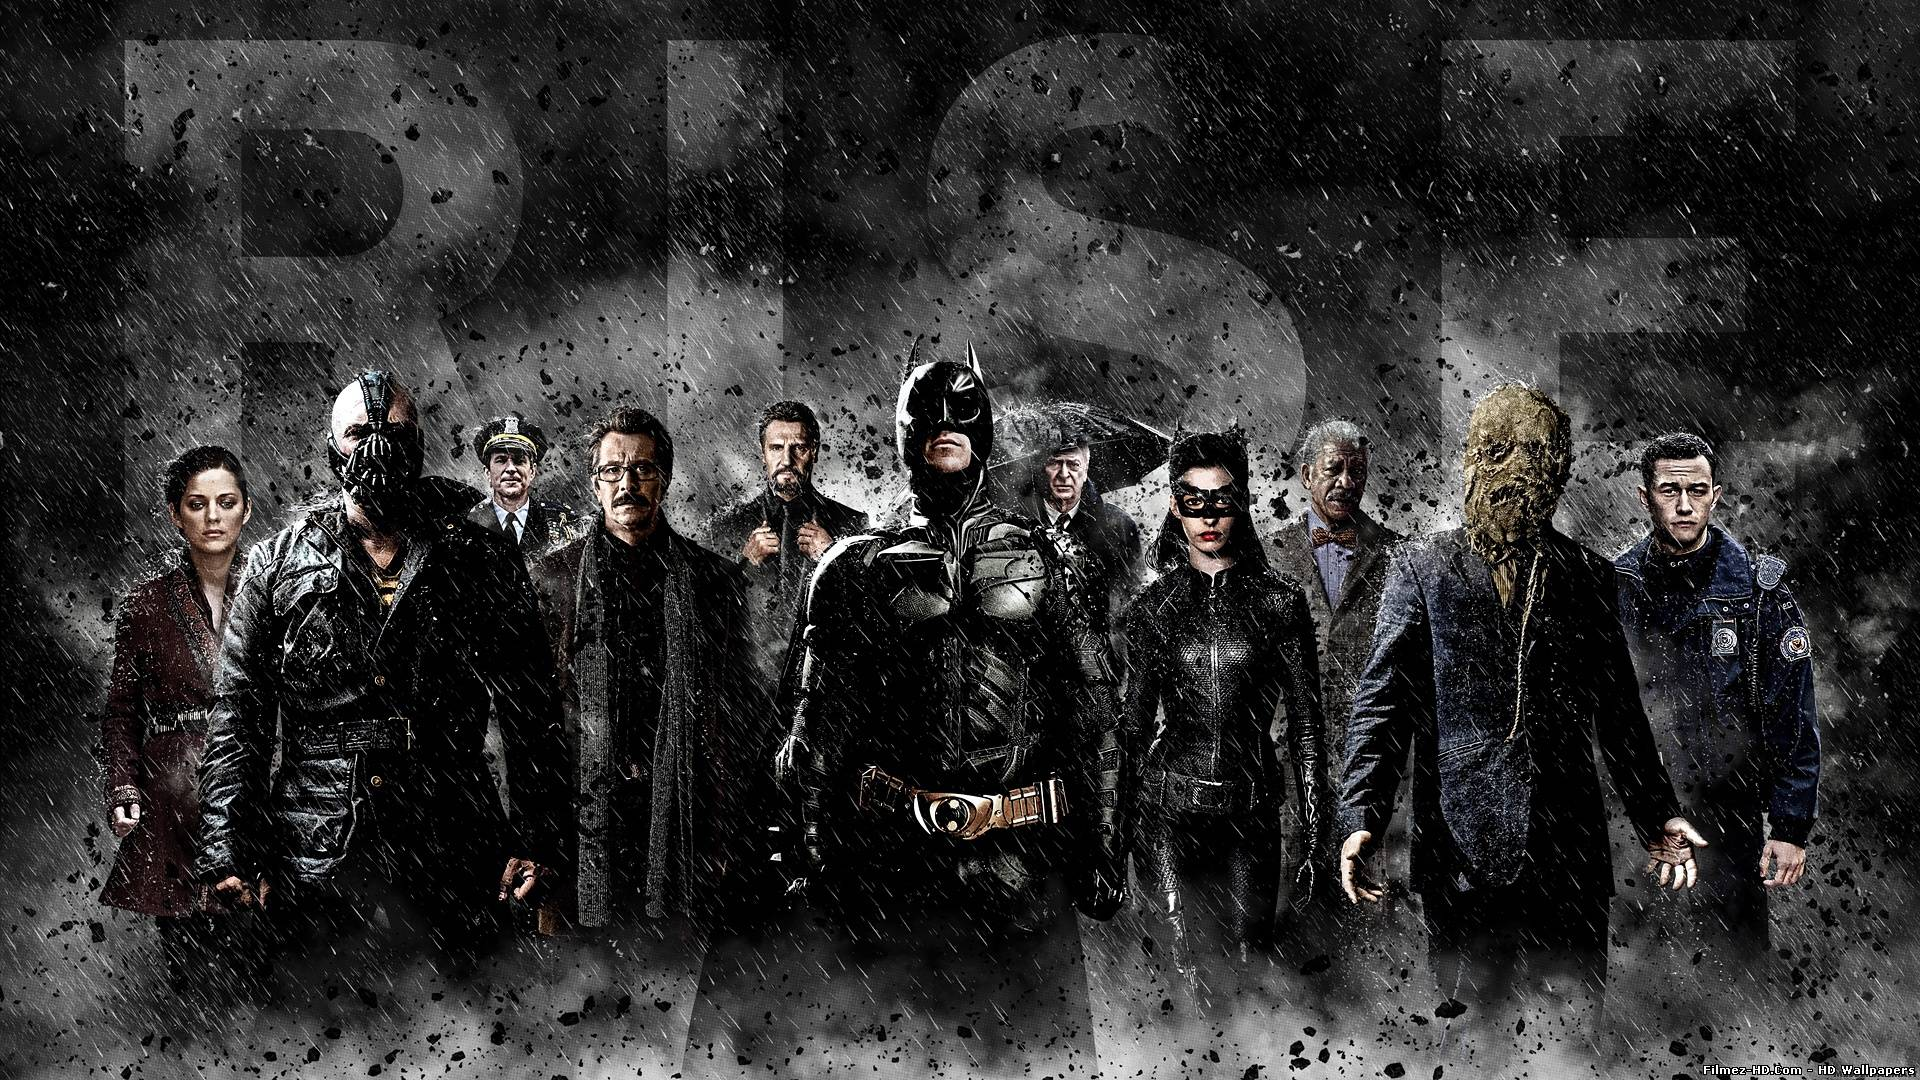 Download free Movies HD Wallpapers and desktop backgrounds